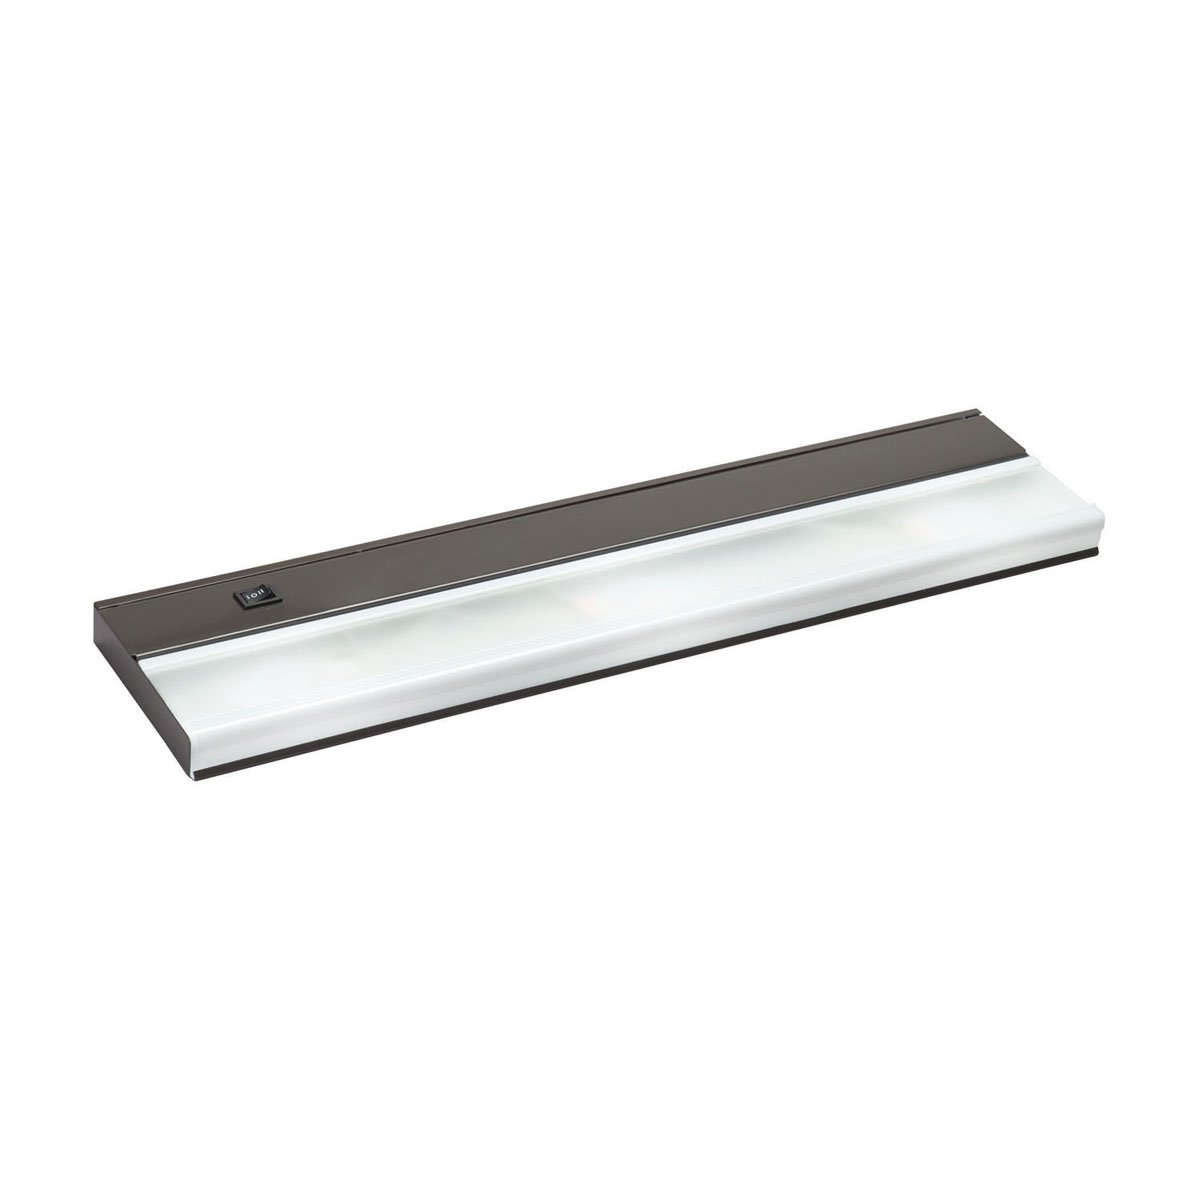 Kichler 10581BZ TaskWork Direct Wire 22IN 3LT 12V Xenon Undercabinet Light, Bronze Finish with Frosted Glass Diffuser